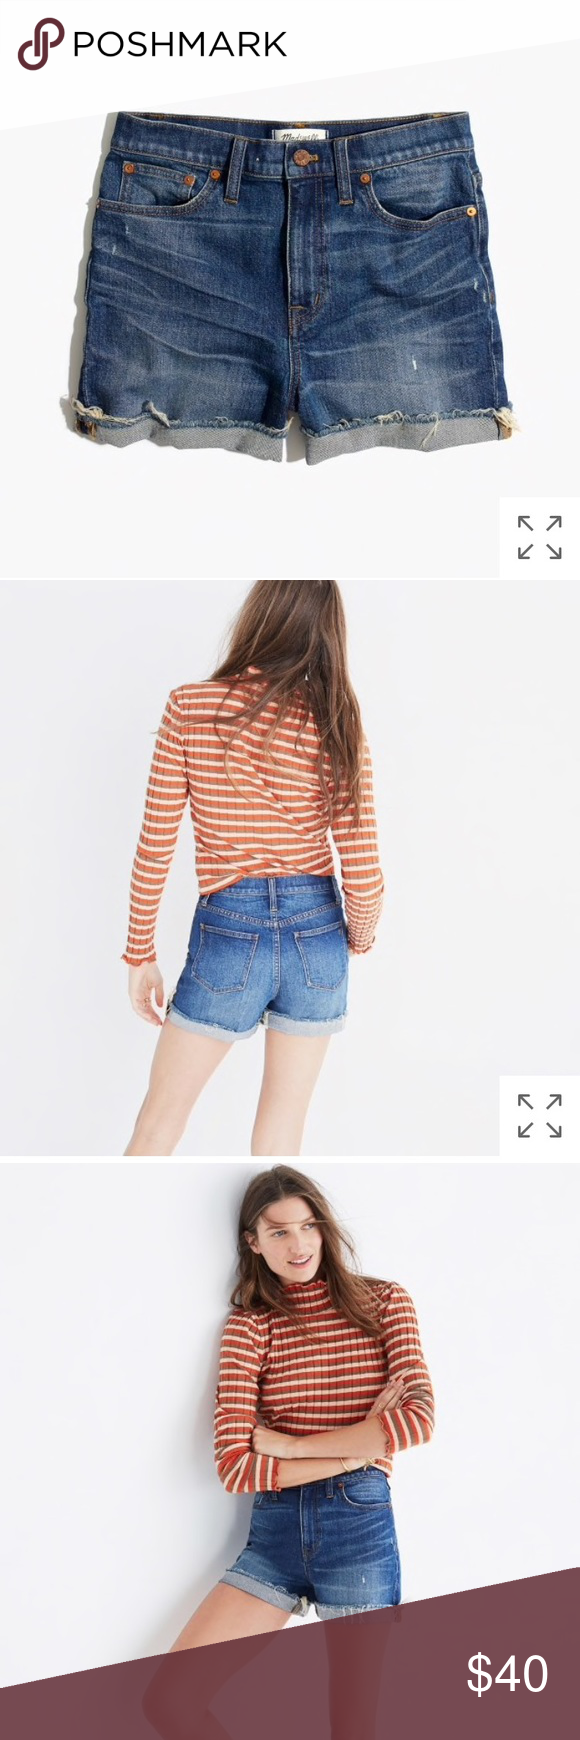 5050be8ed4d Madewell High-Rise Denim Boyshorts in Glen Oaks Euc. Just too big on me now  as I lost weight —PRODUCT DETAILS With a super-flattering (and ...